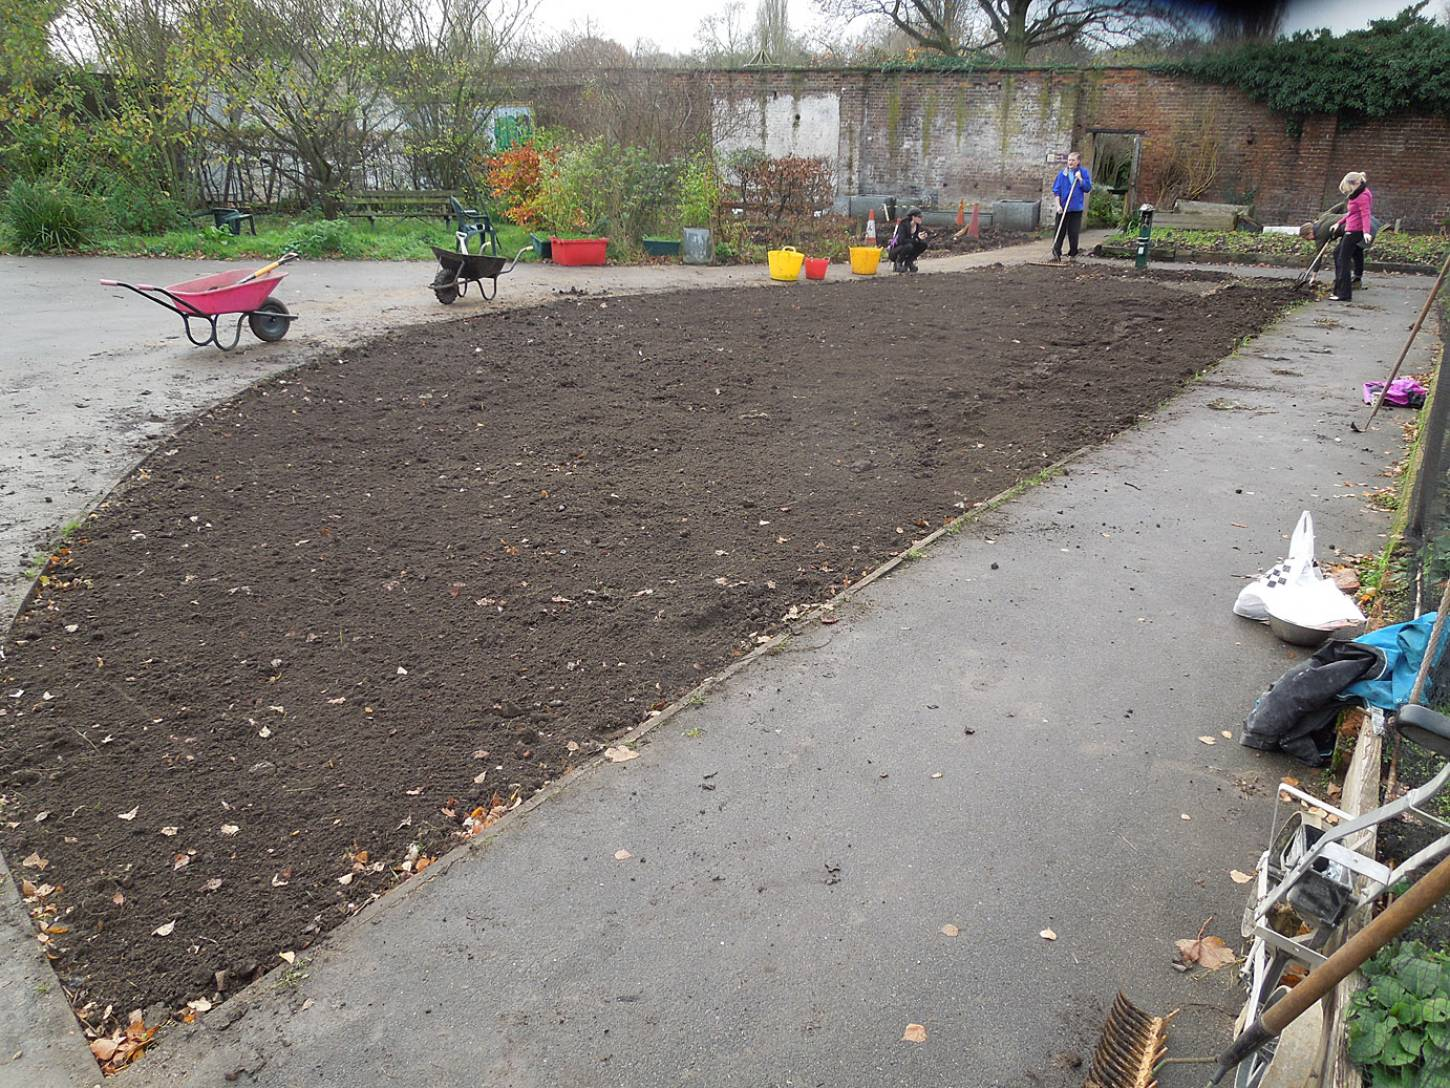 sowing at the <A href='http://www.brockwellgreenhouses.org.uk/welcome/' target=_blank>Brockwell Community Greenhouses</a> - 1:04pm&nbsp;26<sup>th</sup>&nbsp;Nov.&nbsp;'15